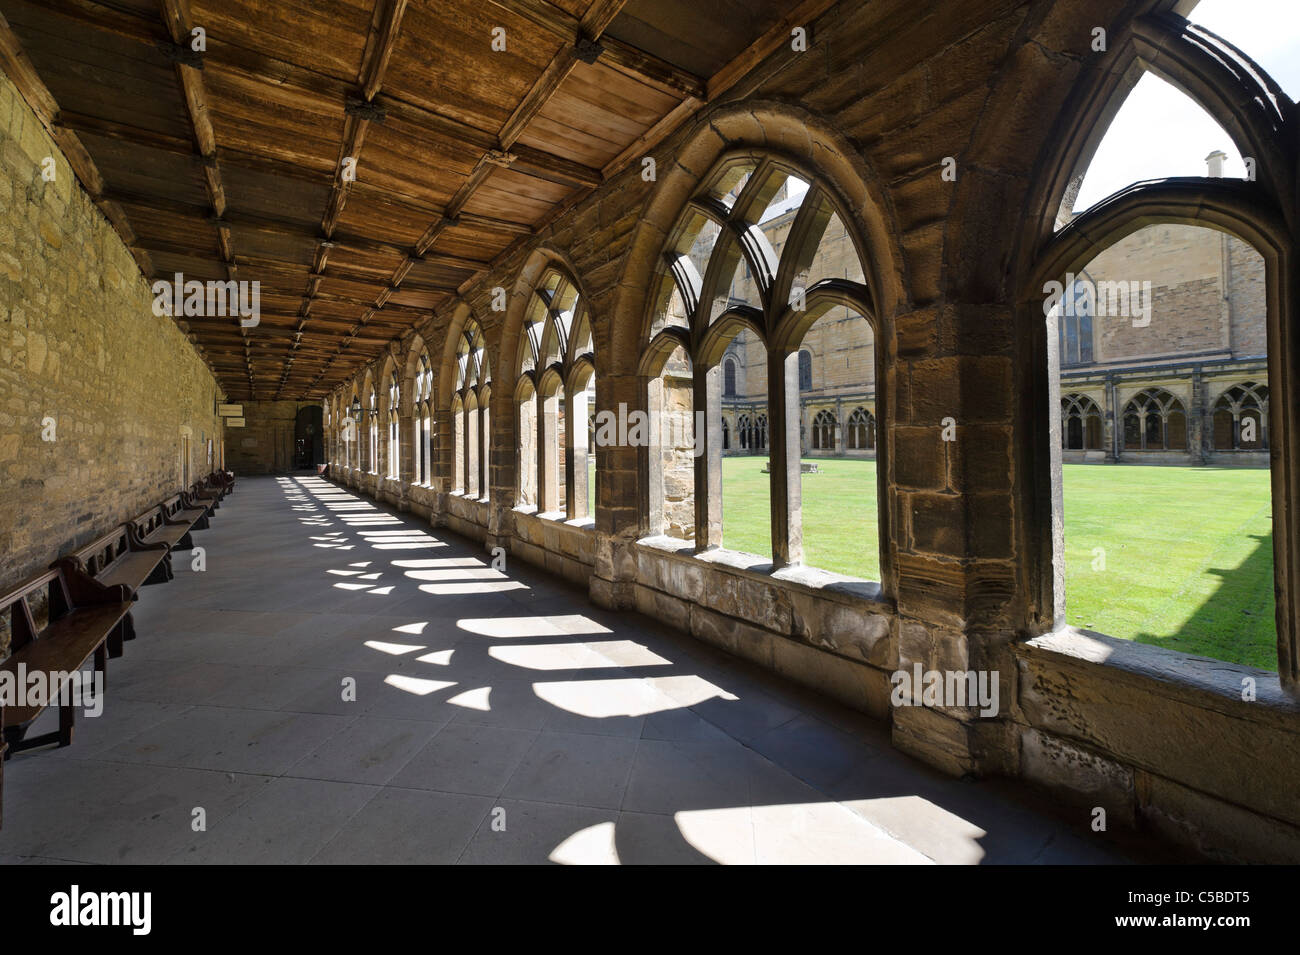 Cloister in Durham Cathedral, County Durham, North East England, UK - Stock Image